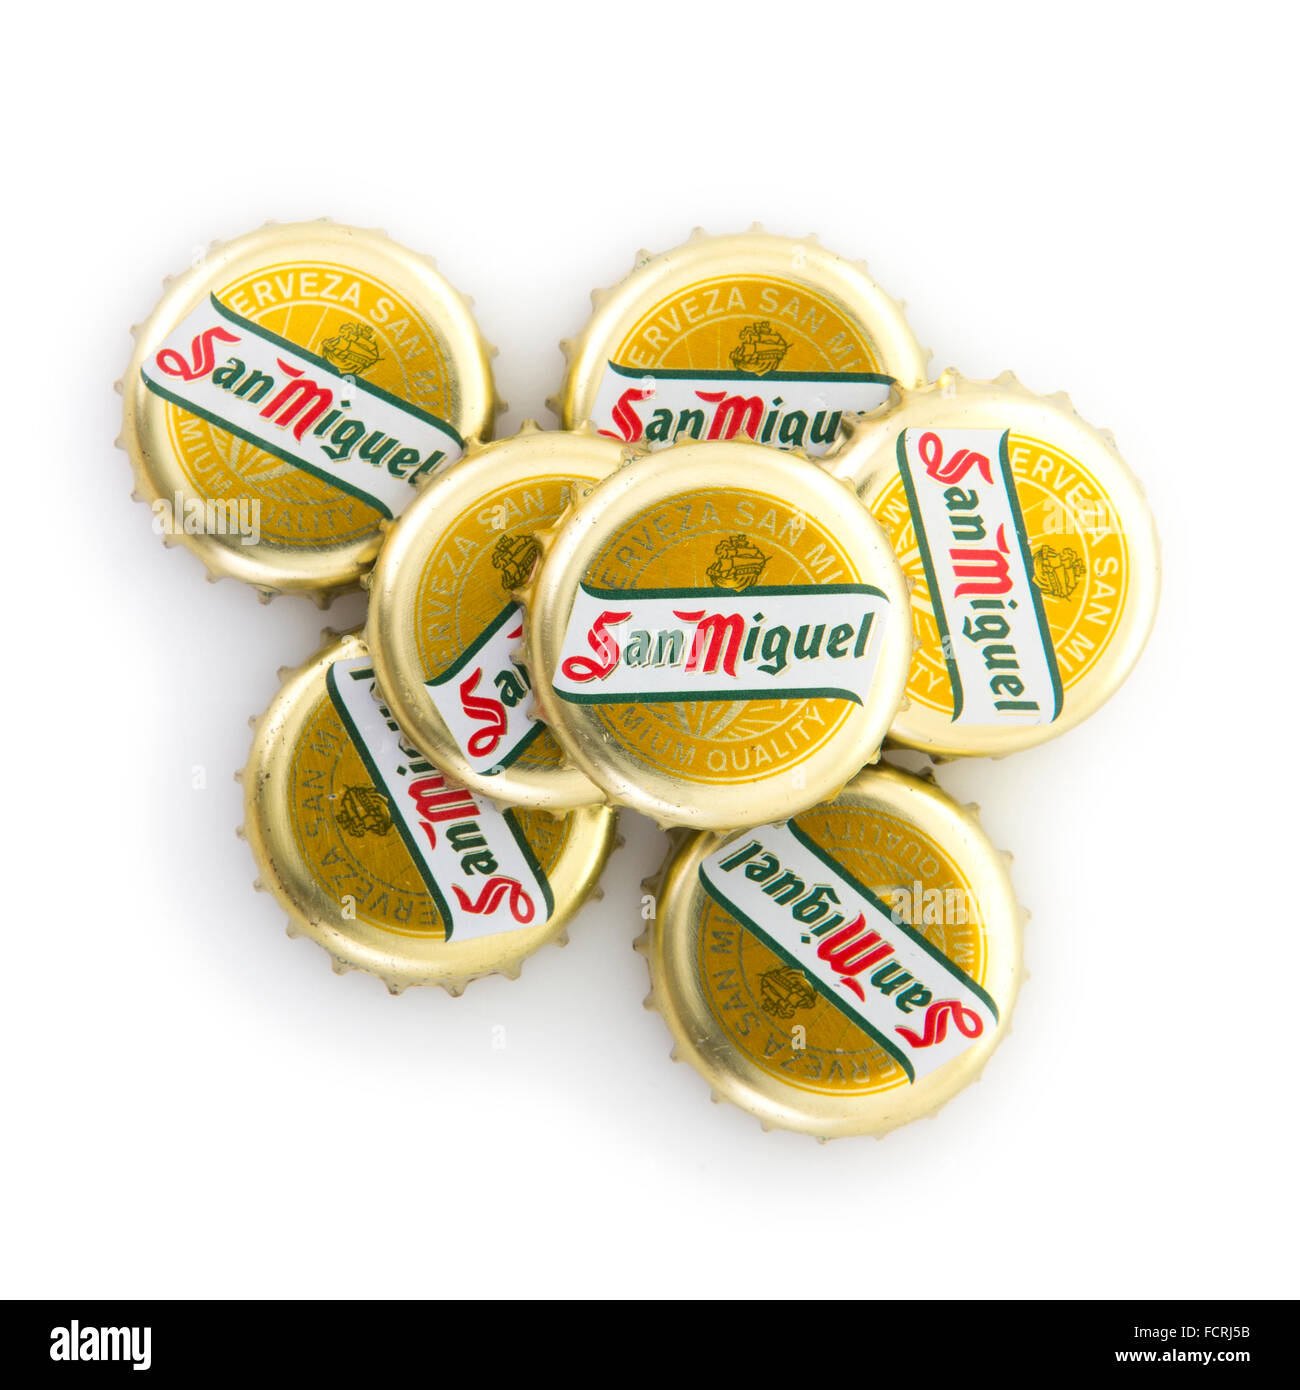 San Miguel beer bottle caps on white background - Stock Image